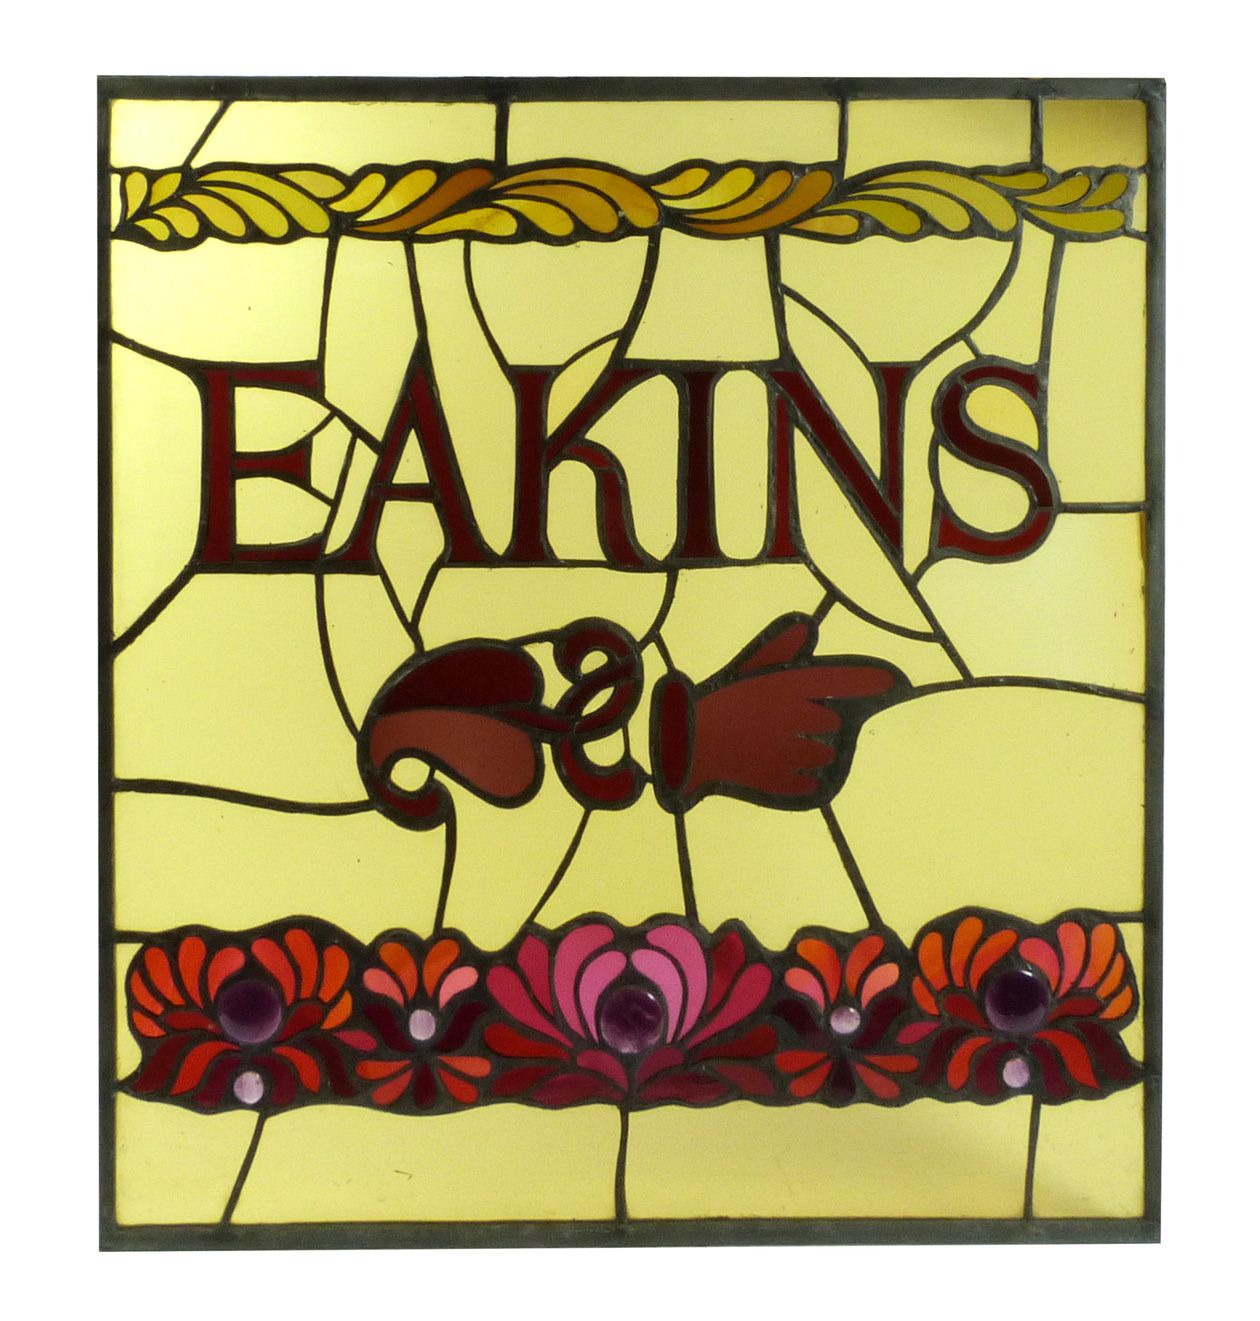 Eakins Press Stained Glass